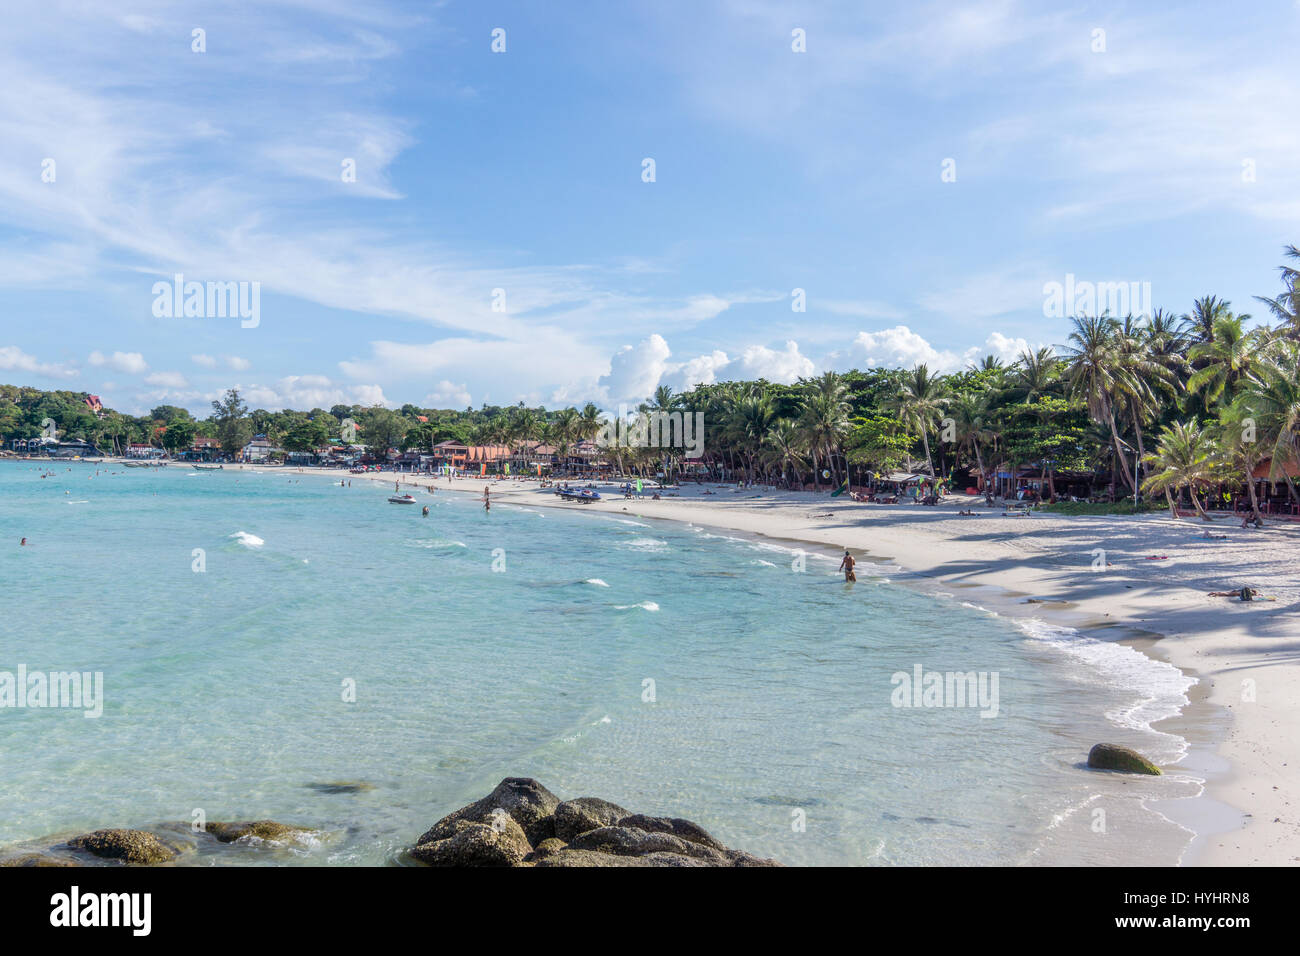 Full moon party beach with crystal clear water,  Haad Rin, Koh Phangan, Thailand - May 5, 2016 - Stock Image